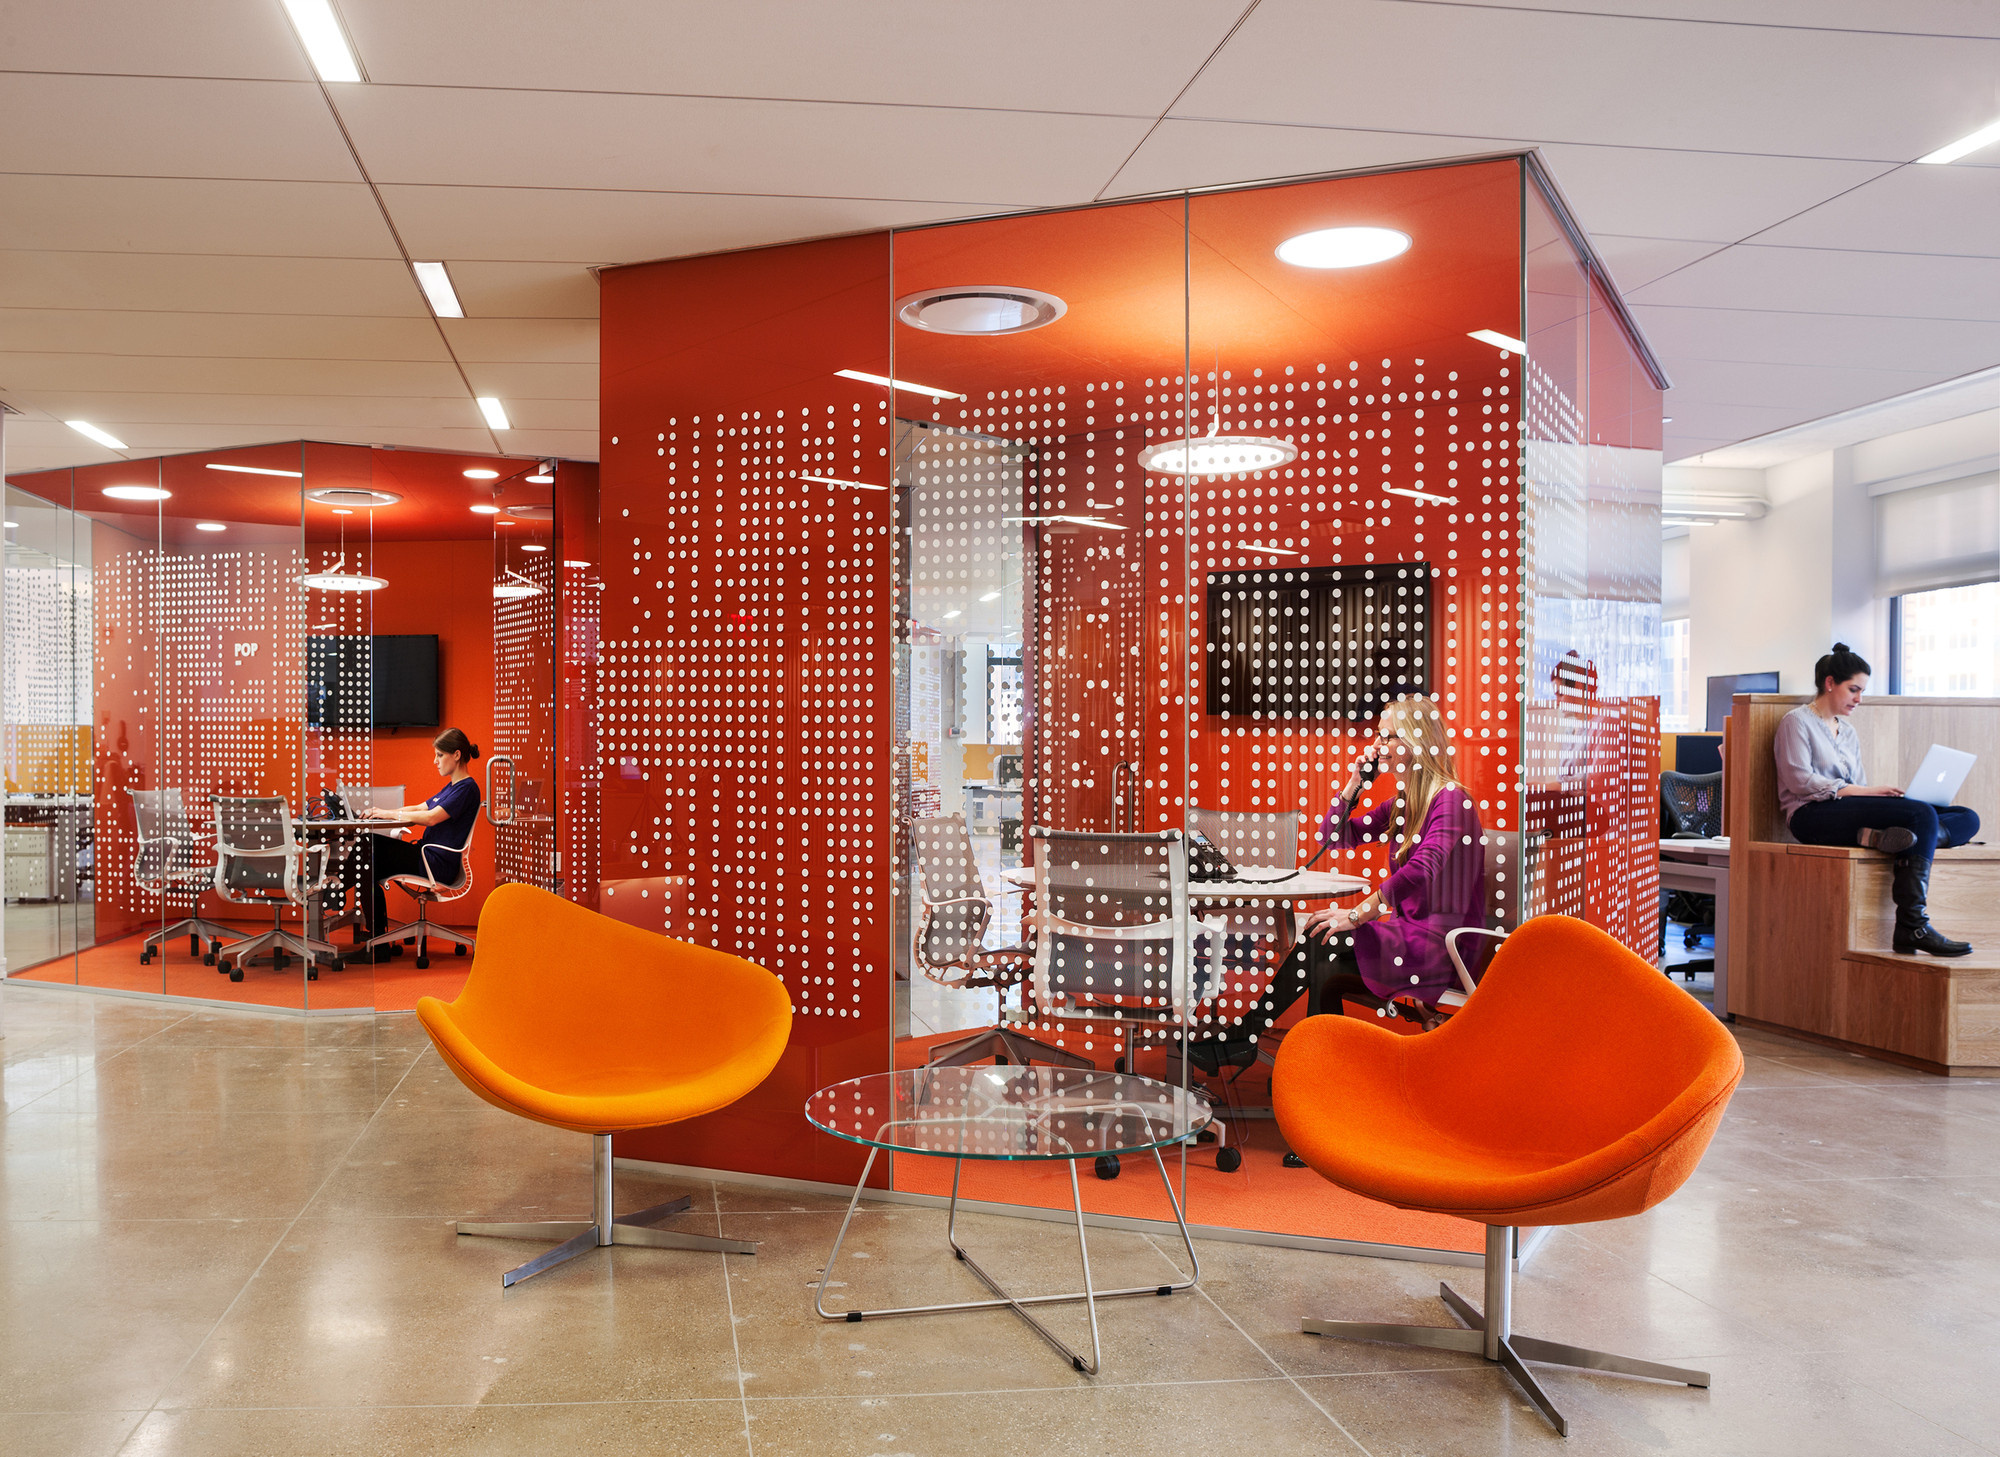 Pandora Media Inc. New York Office. Image © Durston Saylor